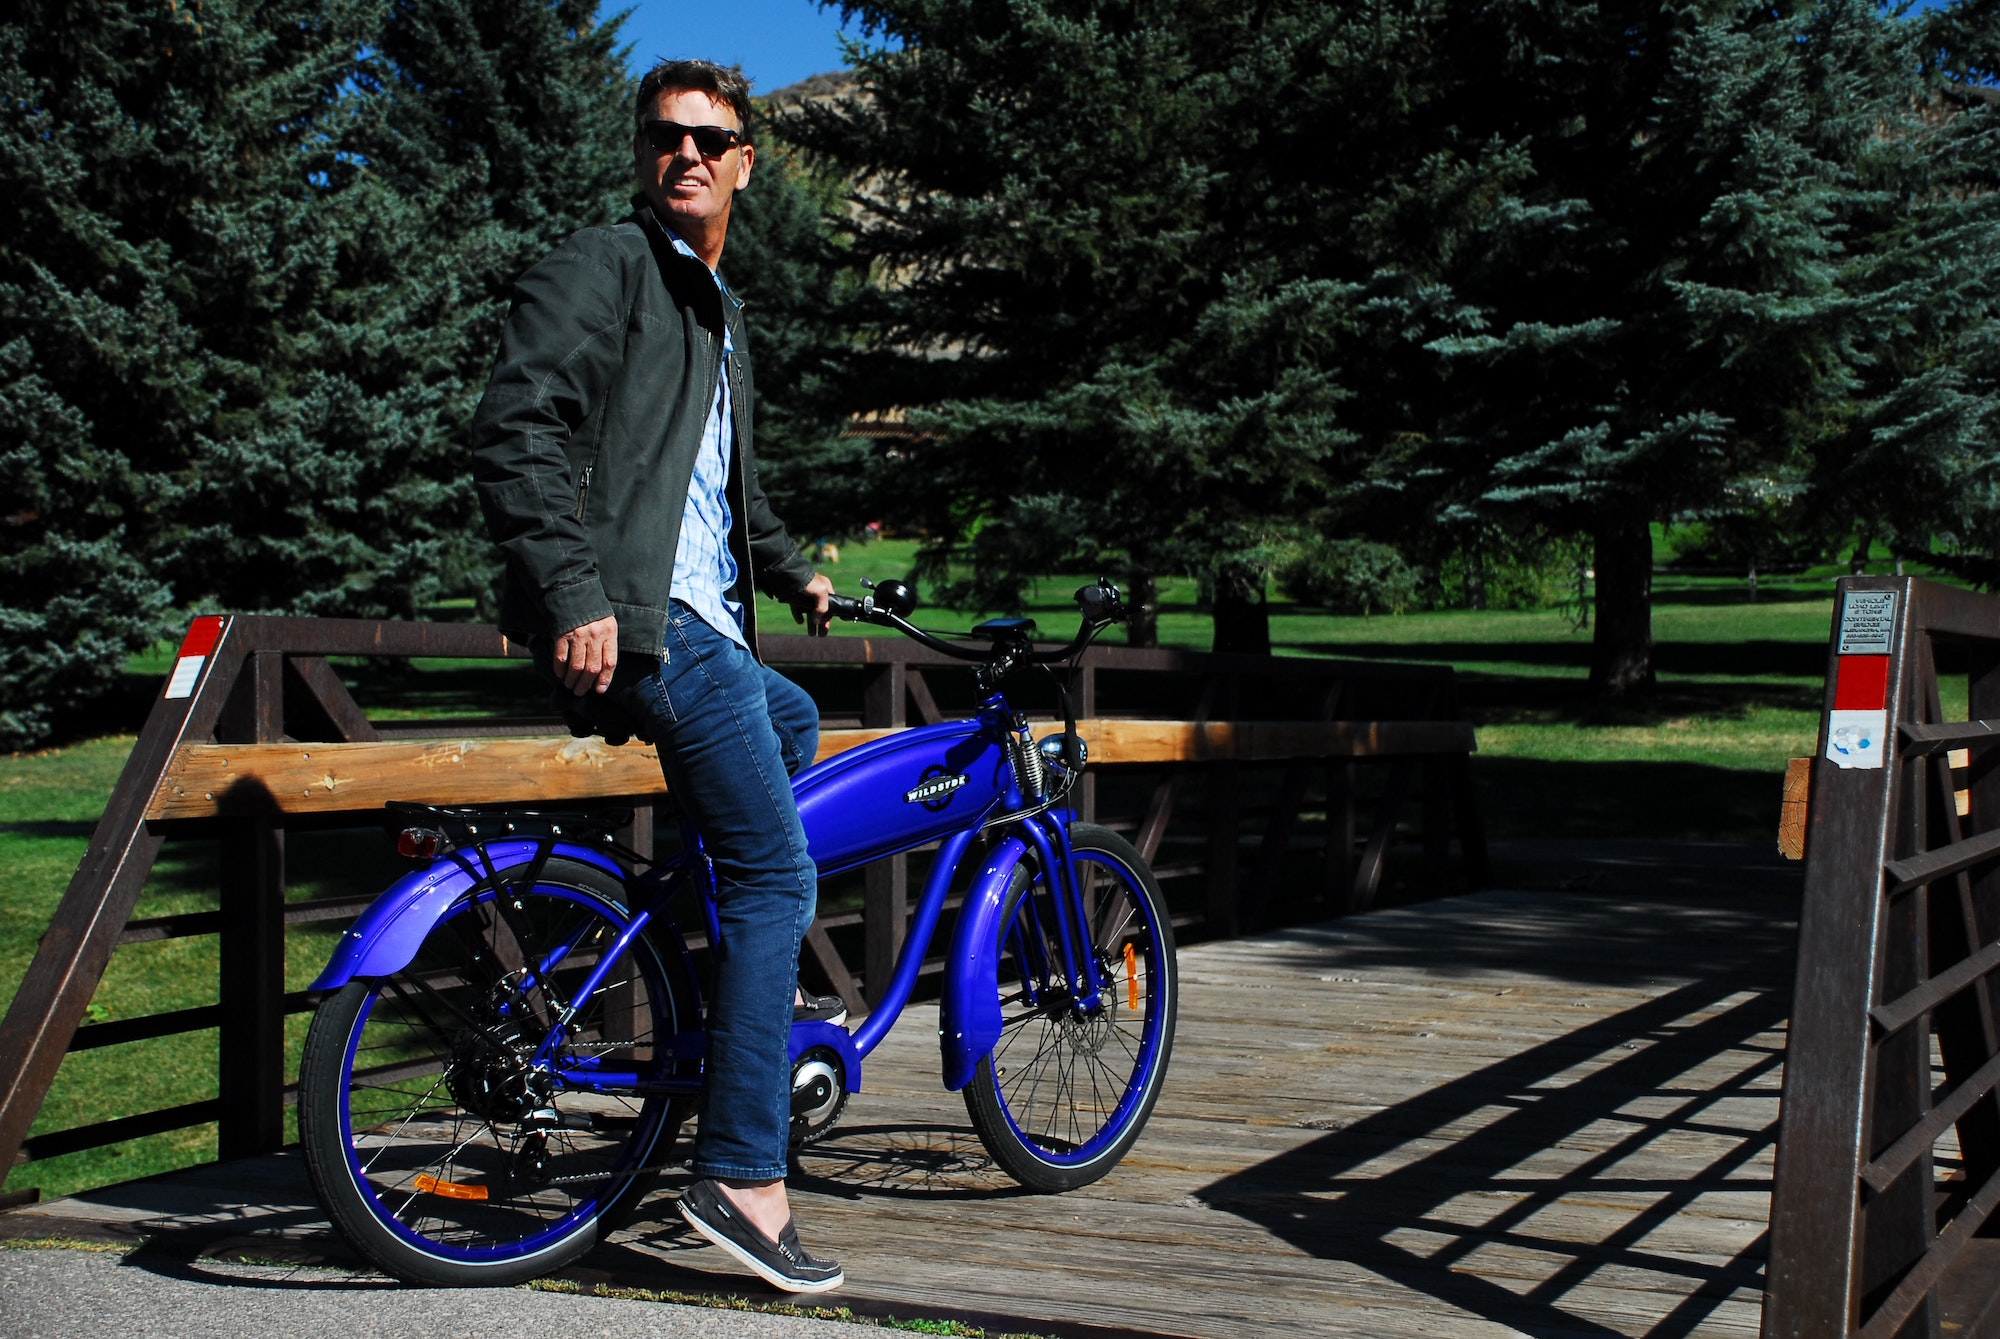 Wildsyde electric bikes bring smiles